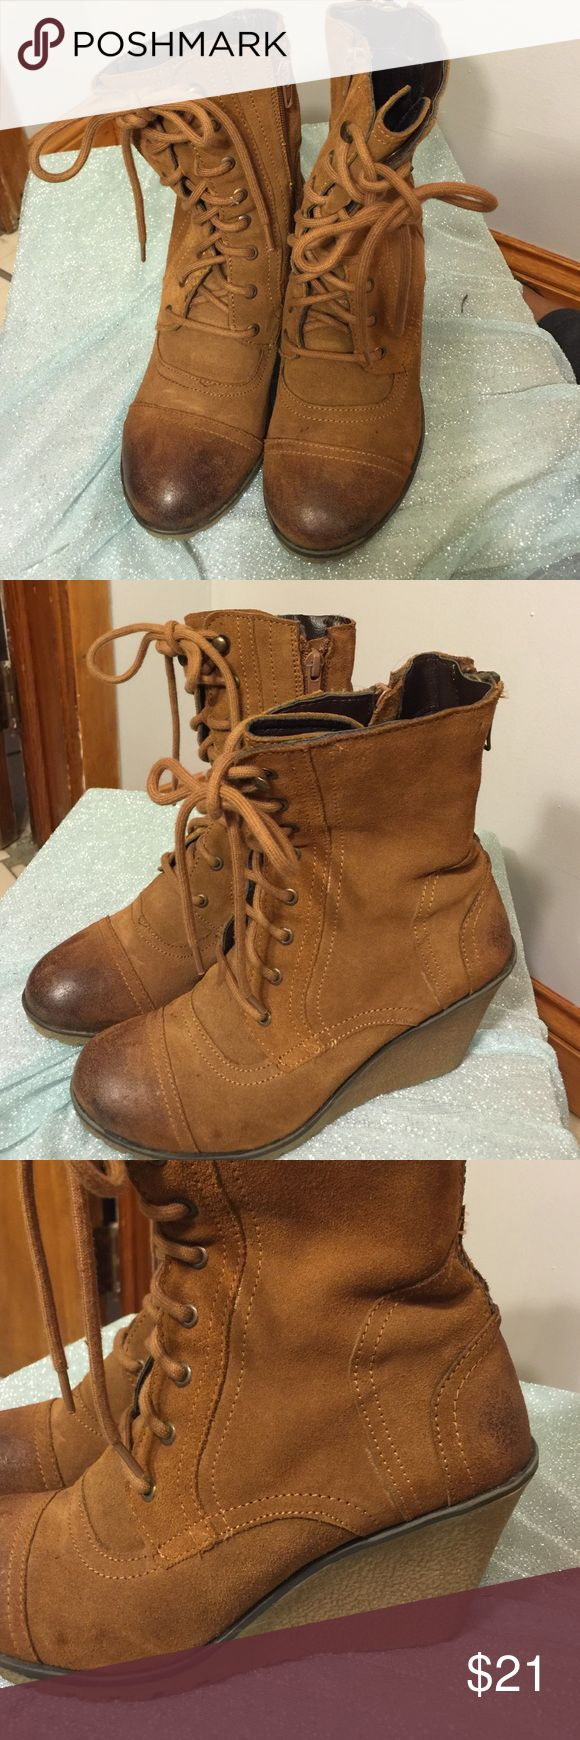 Wedge Bootie Soft brown wedge bootie in mint condition. Perfect for this season! It has two zippers, one on the back and one on the side and as you can see above the frontal lace. Super chic! Skechers Shoes Ankle Boots & Booties